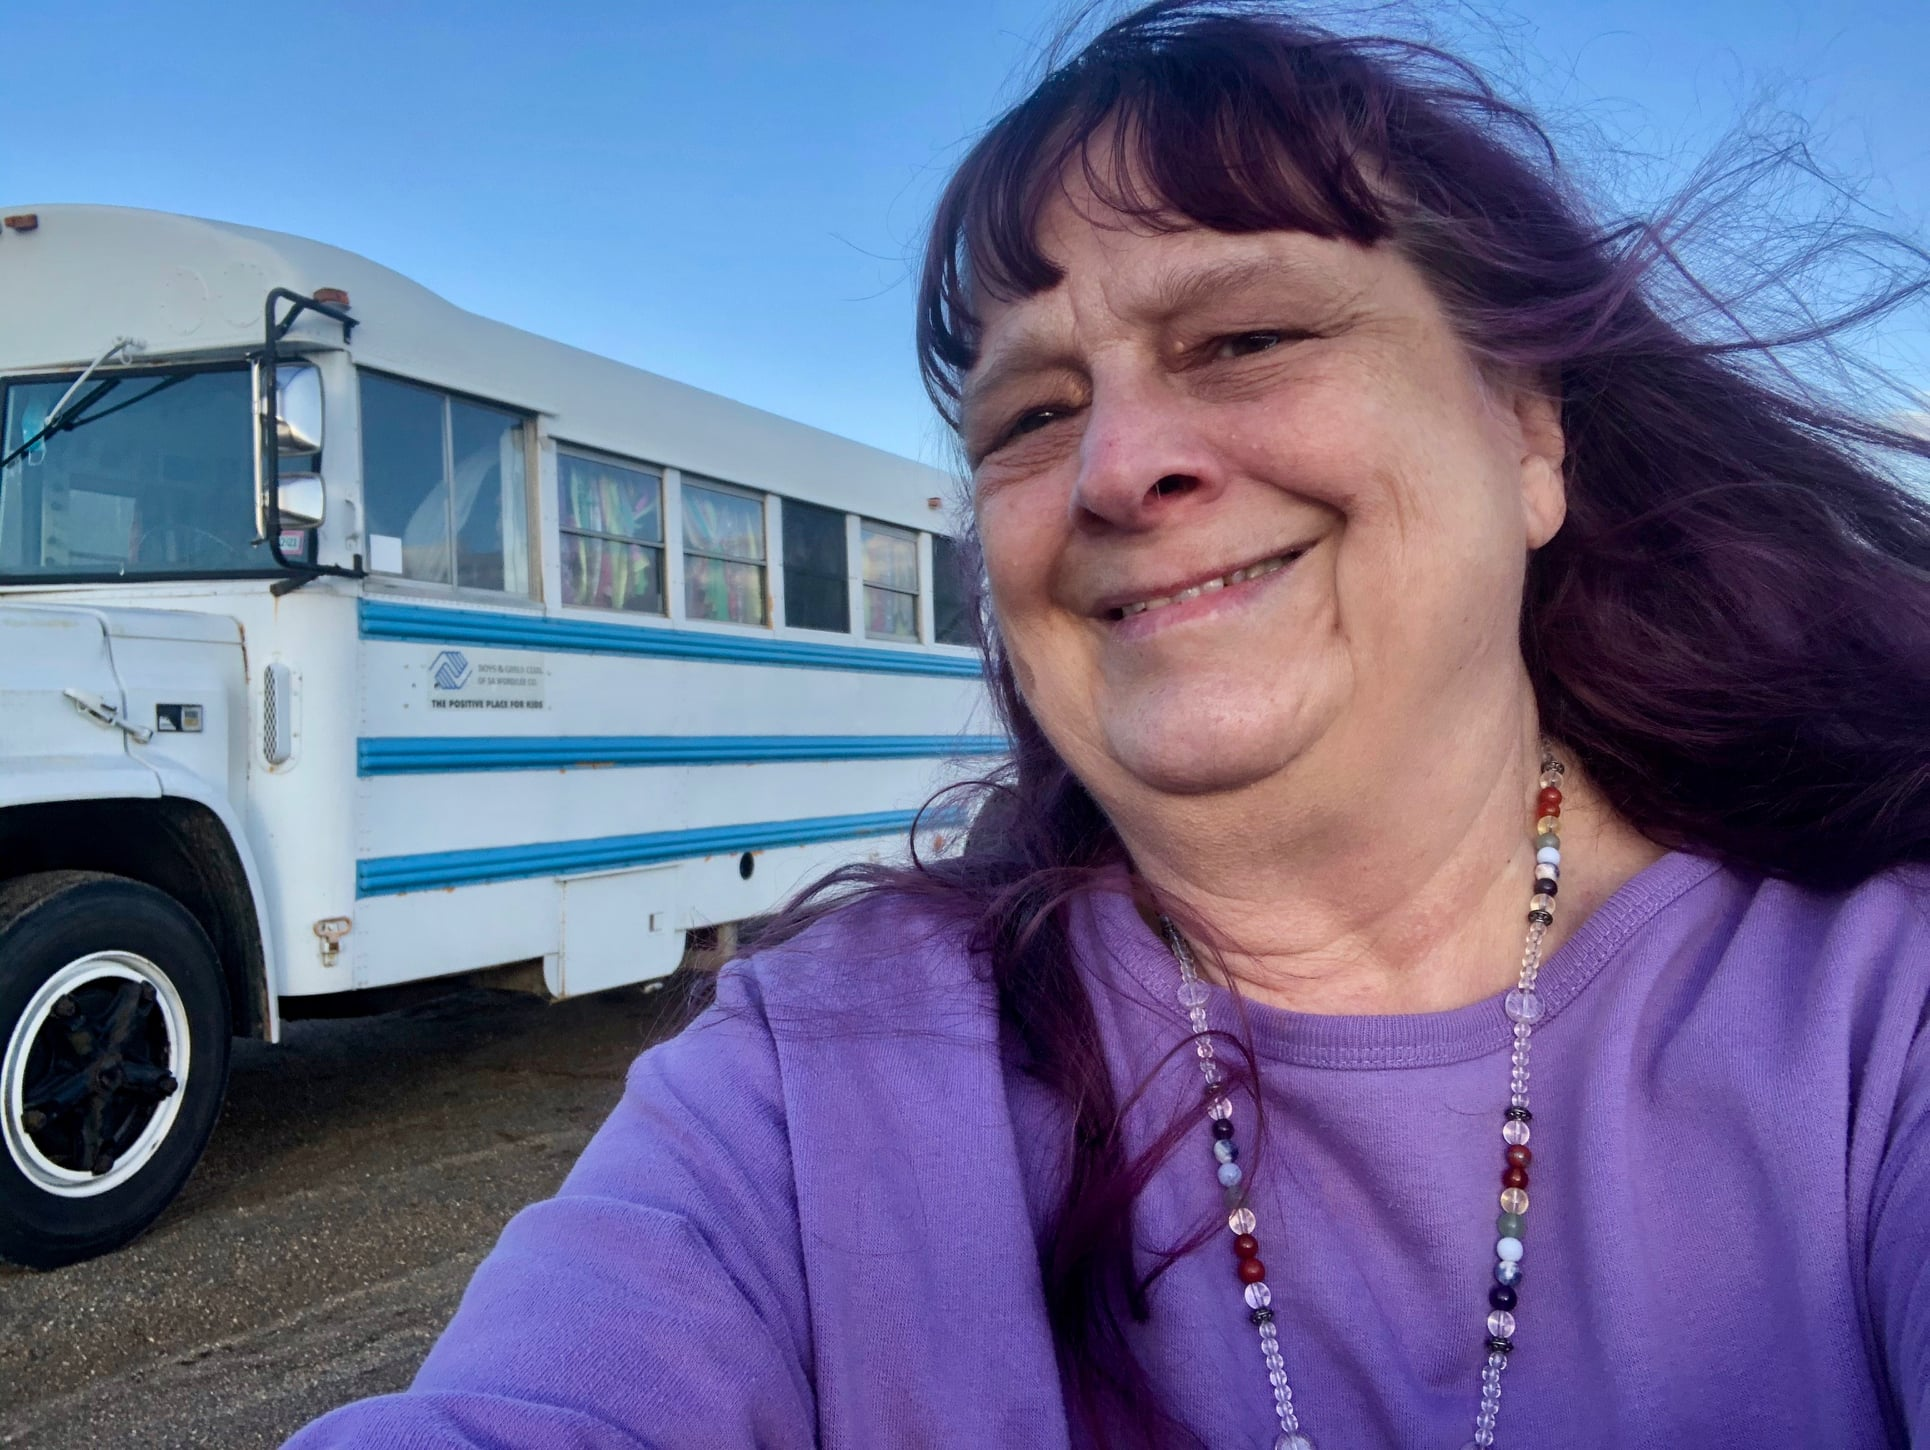 Meet Lynn Woike, the 'Skoolie-Driving, Witch on Wheels'